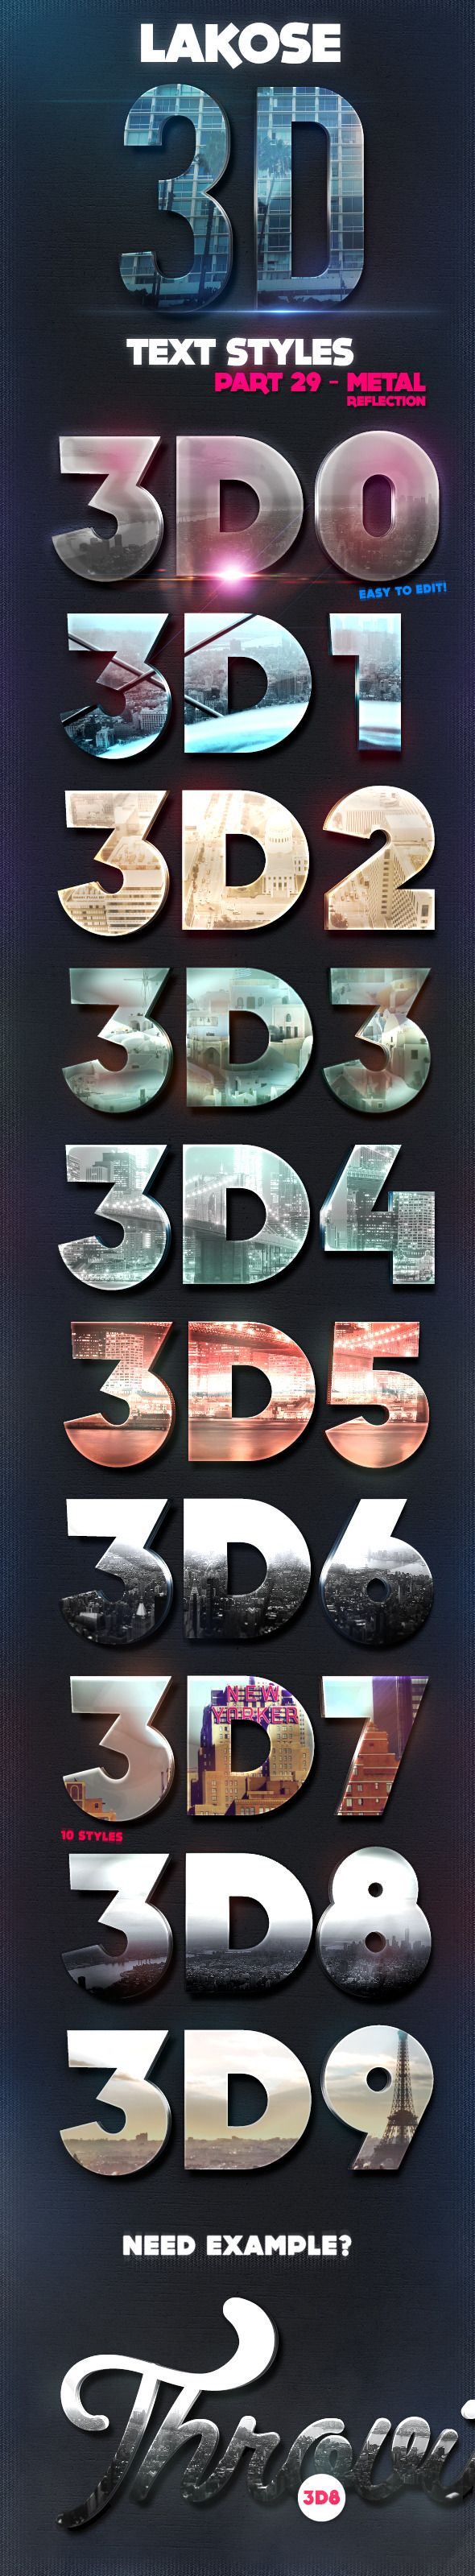 GraphicRiver Lakose 3D Text Styles Part 29 11975507